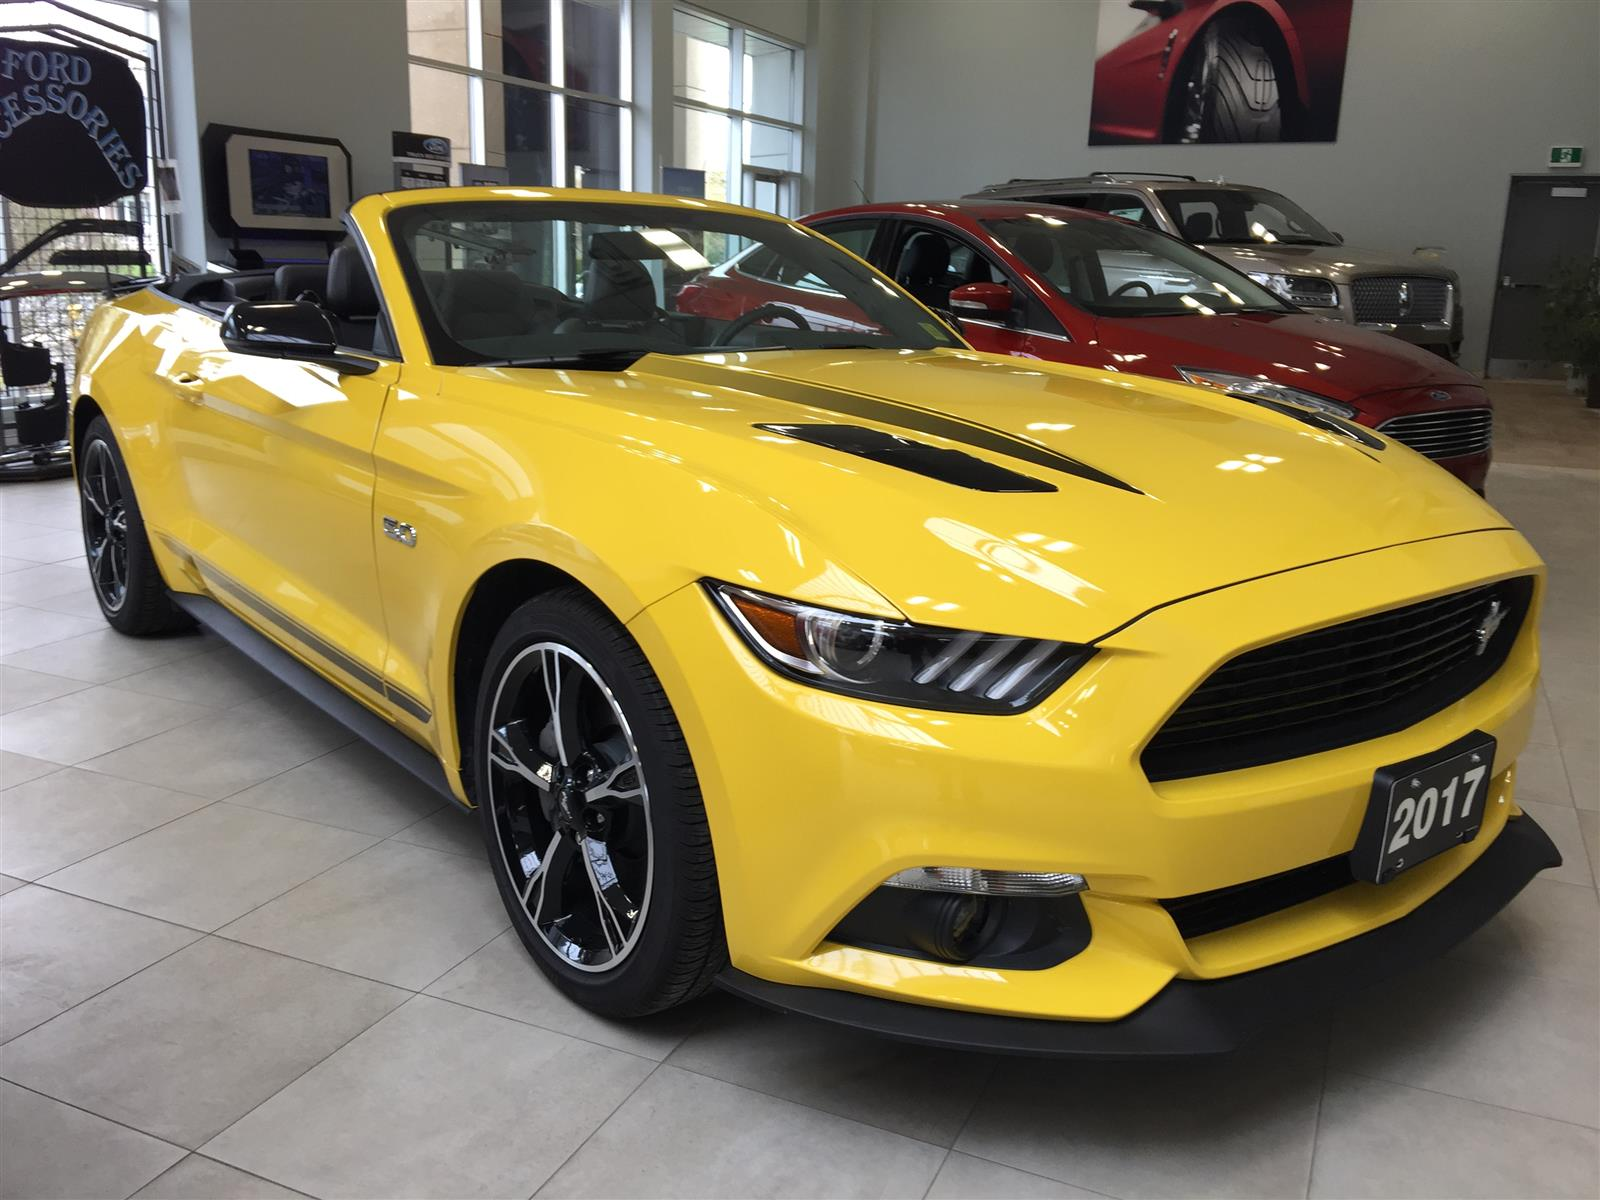 2017 Ford Mustang Gt Convertible Yellow 5 0l V8 Dohc 32v